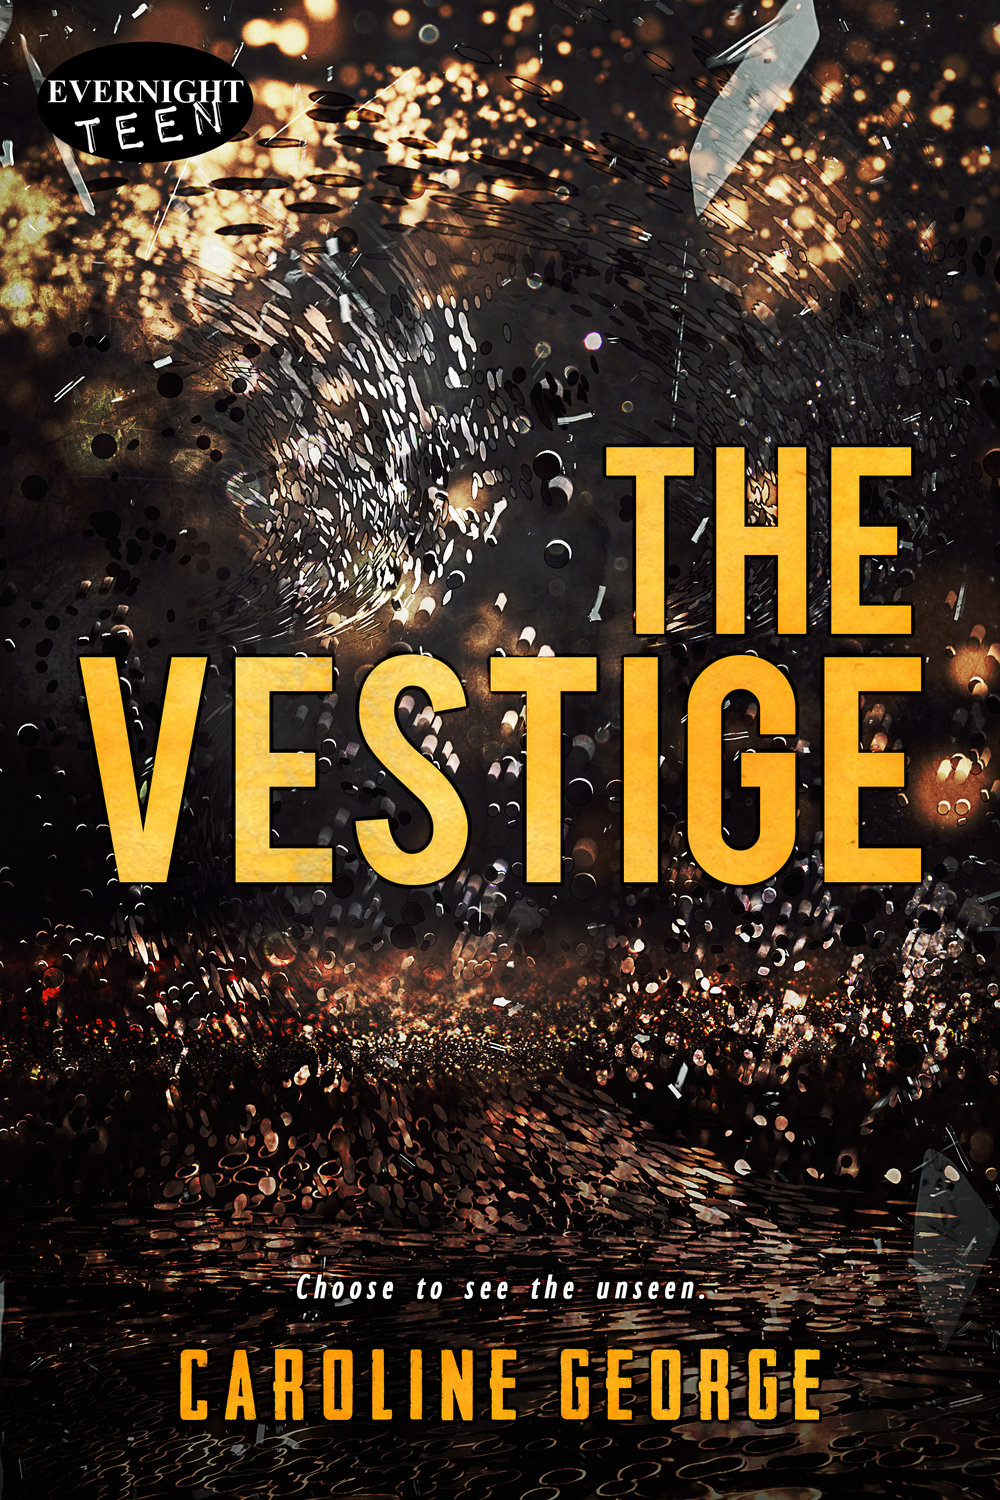 THE-VESTIGE-evernightpublishig-2017-finalimage.jpg